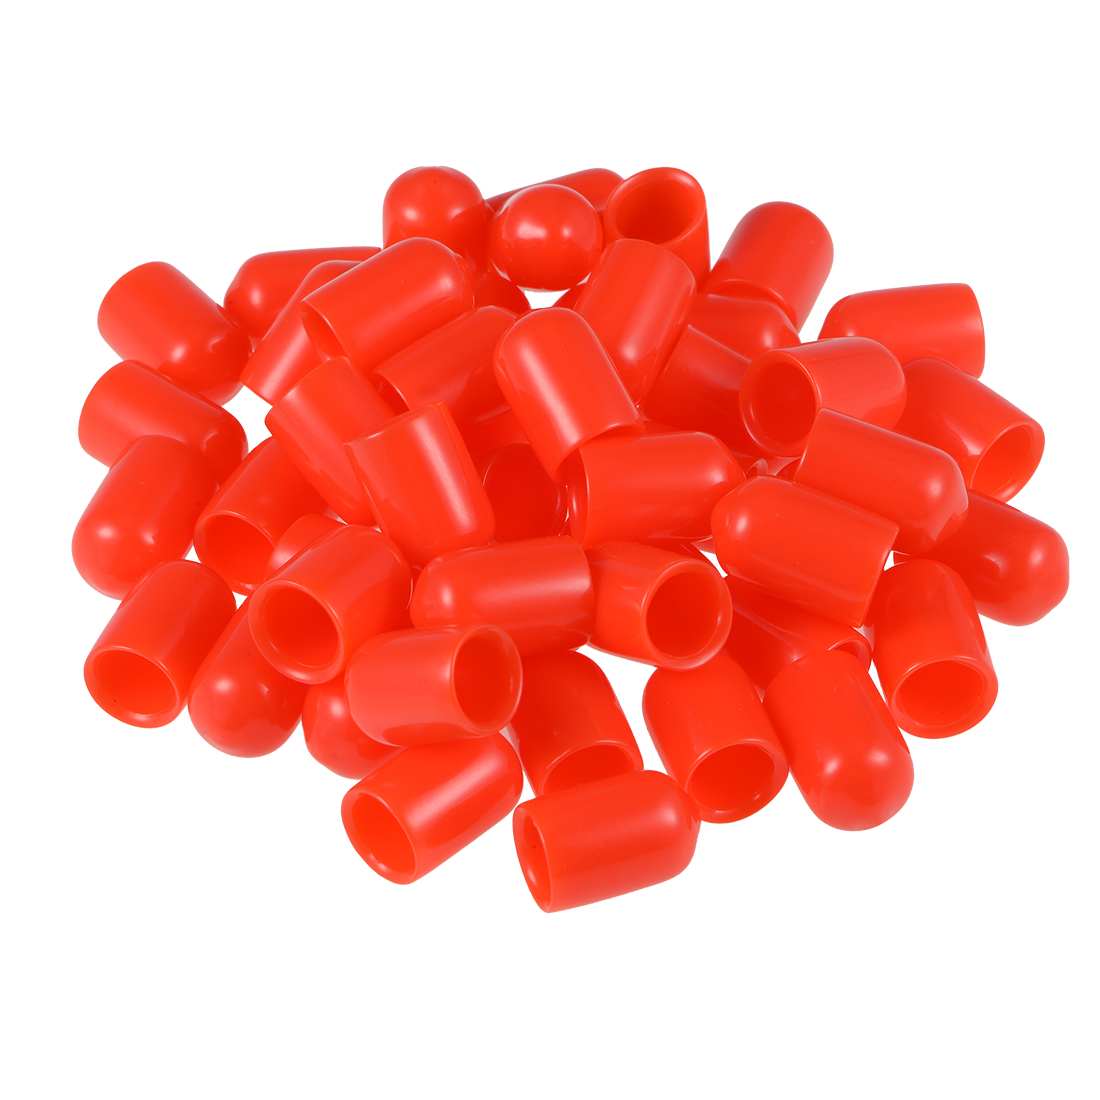 Screw Thread Protectors, 8.5mm ID 15mm Length Round End Cap Cover Red 50pcs